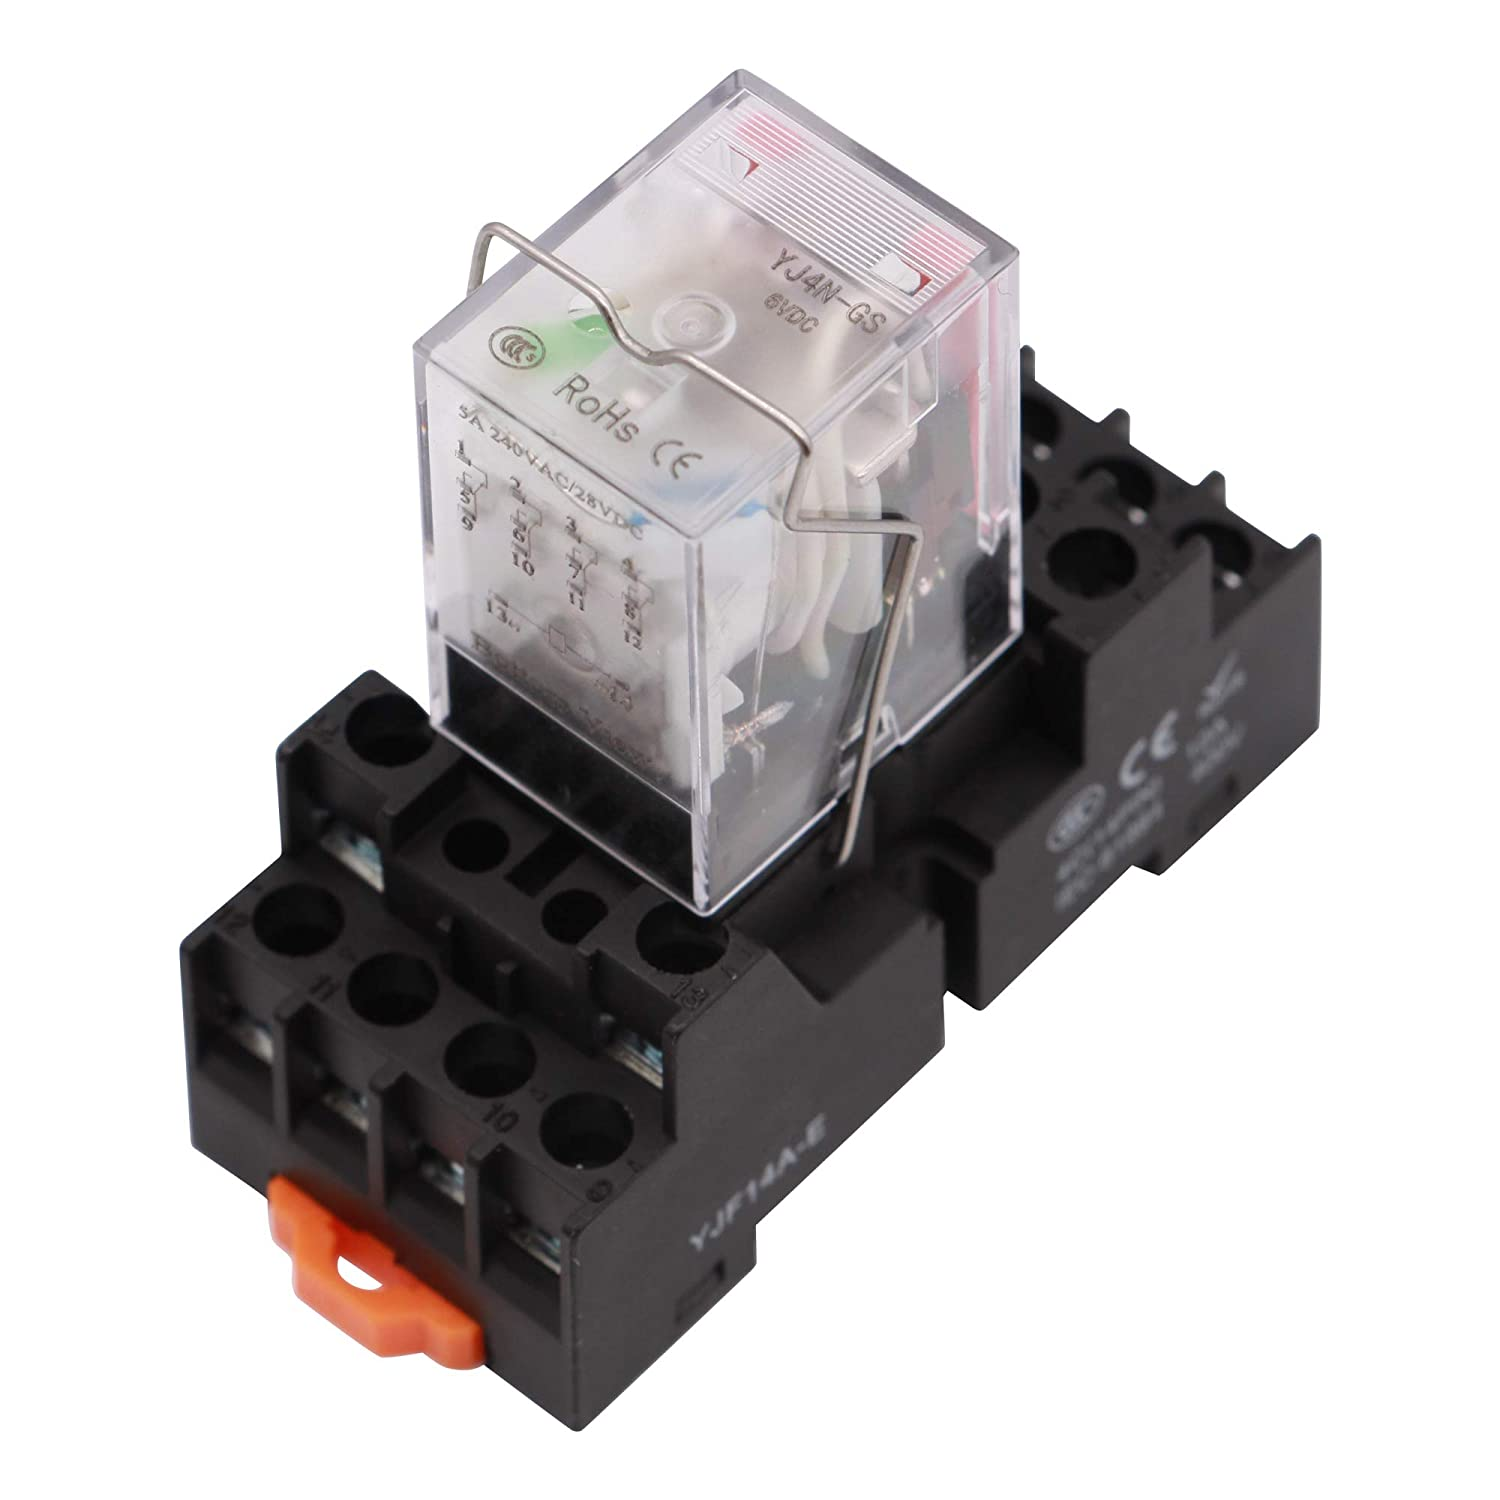 Amazon.com: Electromagnetic Power Relay, 14-Pin 5 AMP 6V DC Relay Coil with  Socket Base, LED Indicator, 4PDT 4NO 4NC - MY4NJ [Applicable for DIN Rail  System]: Industrial & ScientificAmazon.com